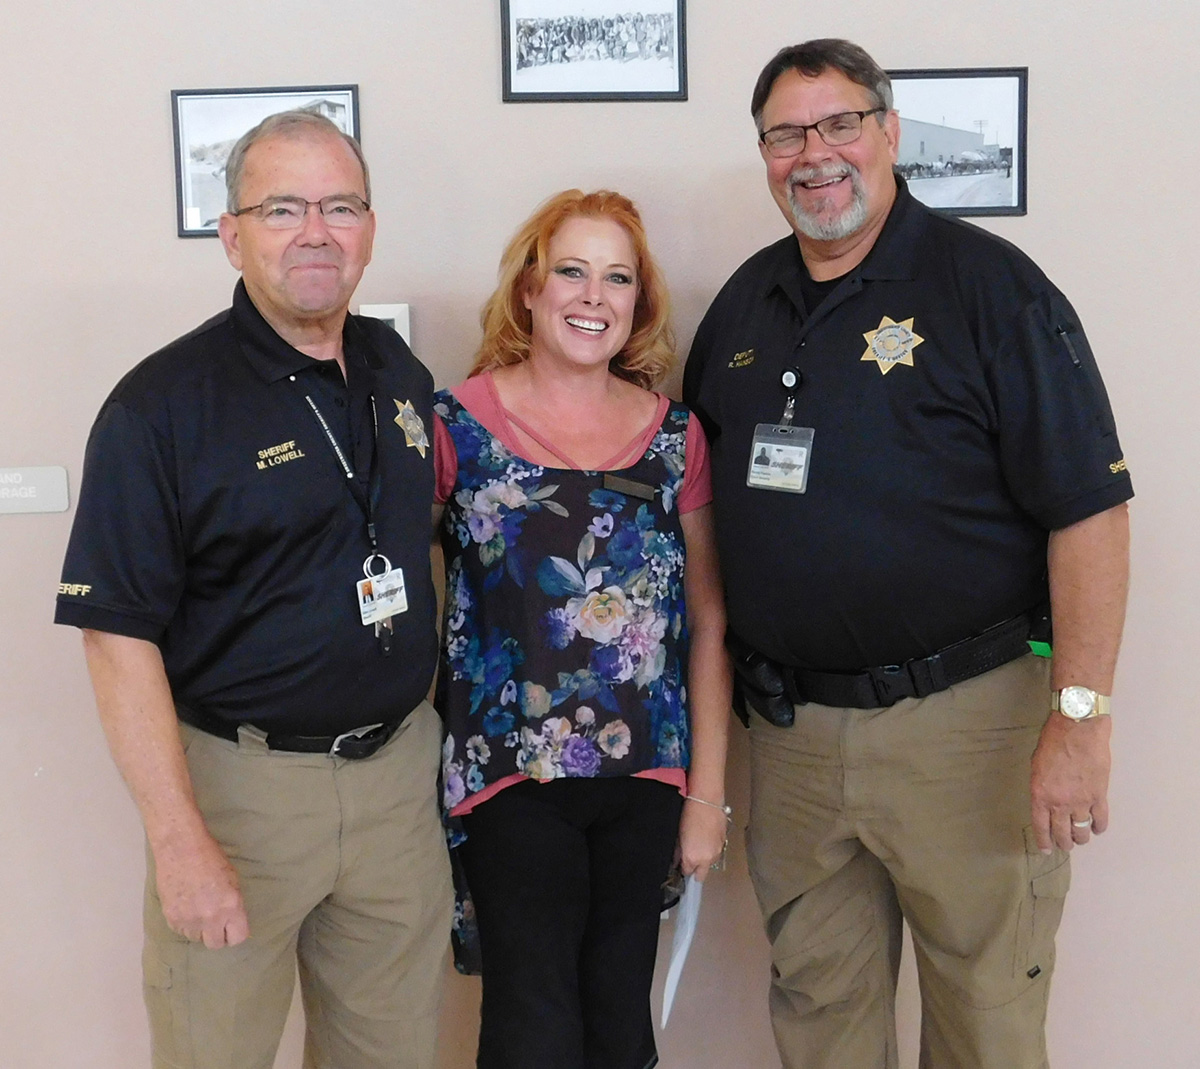 Sweetwater County Deputy Hanson Assigned as Special Liaison to Seniors